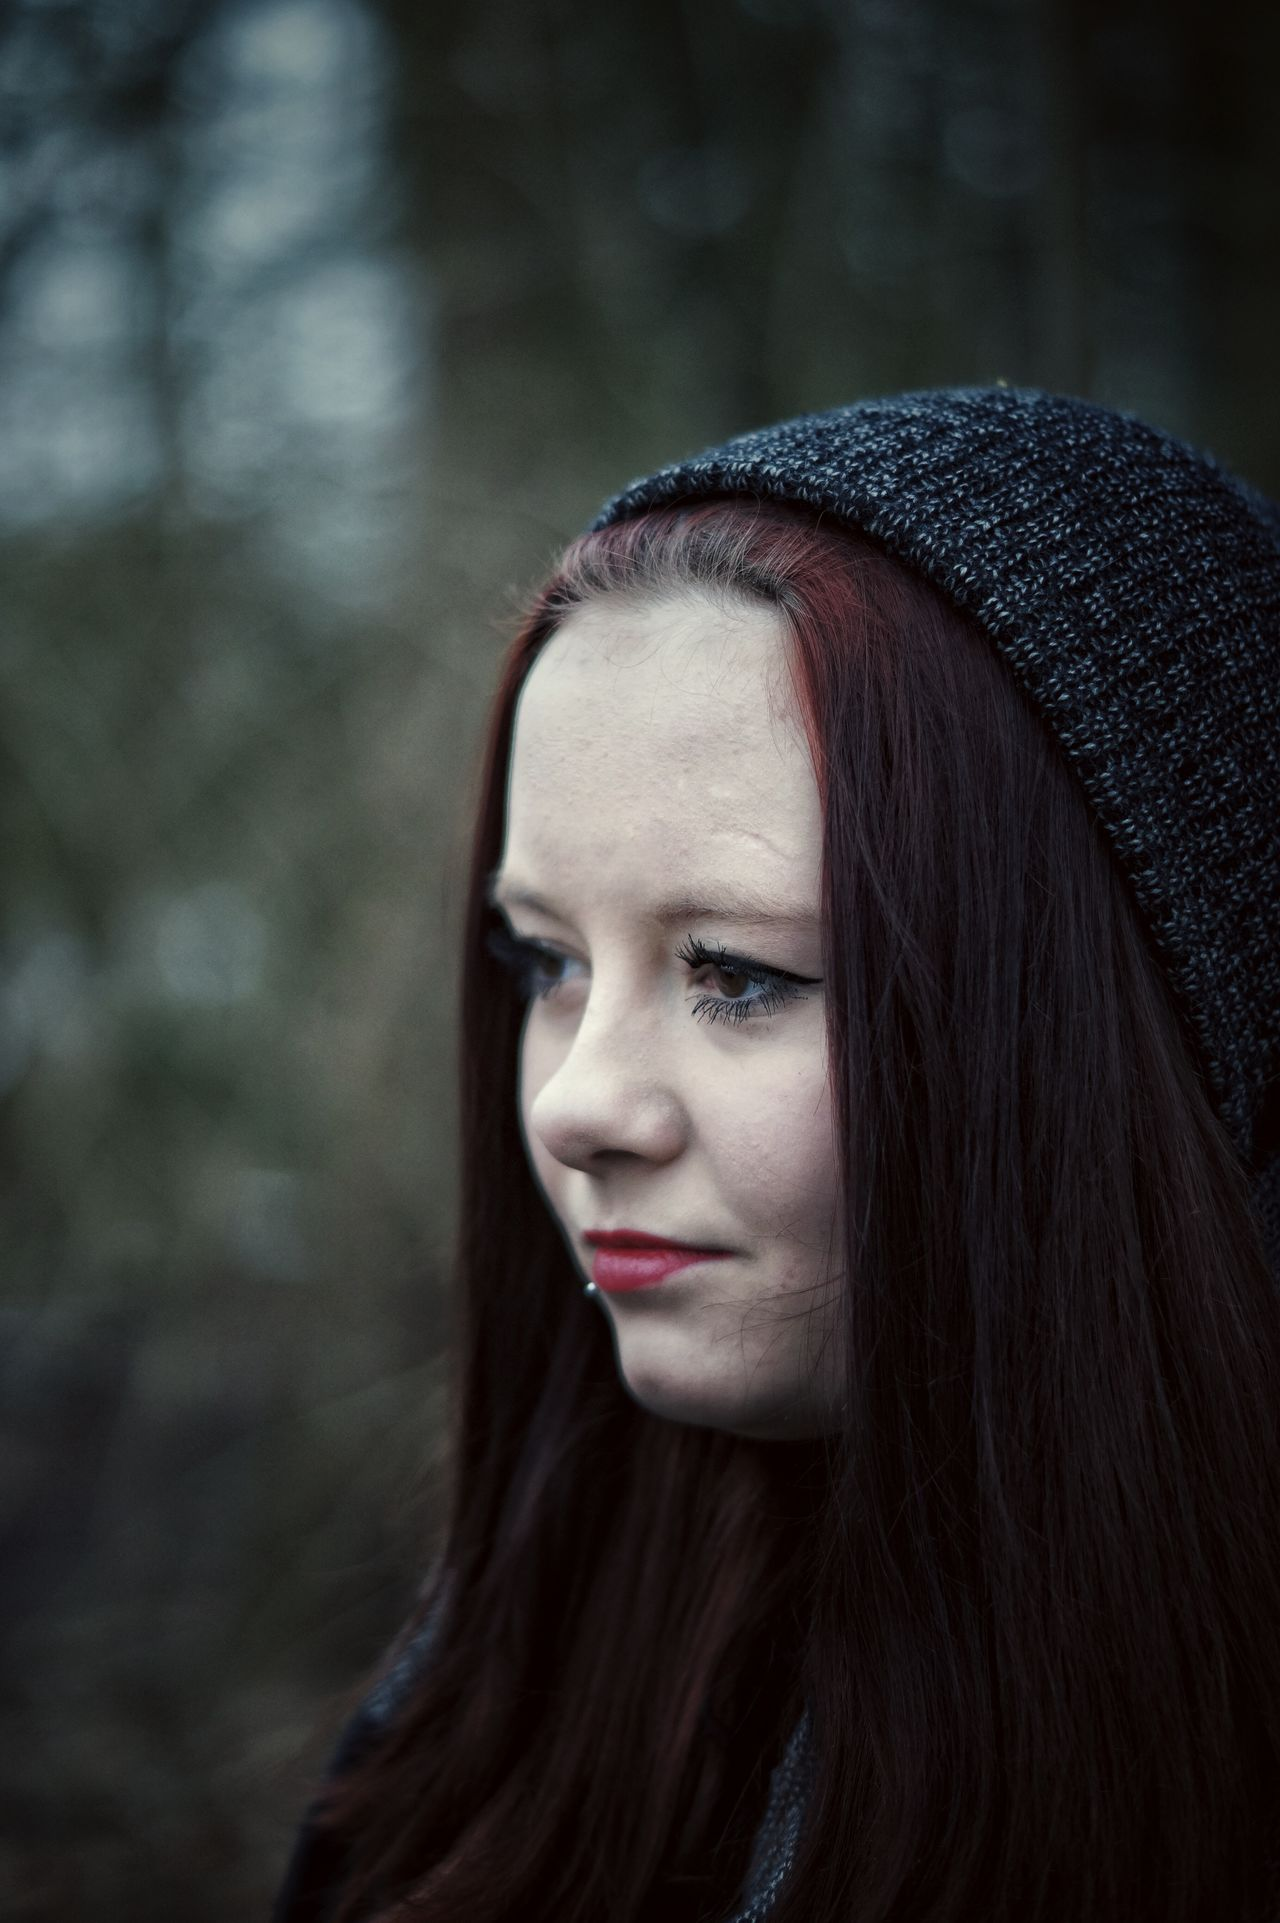 Alpha58 Sonya58 Bokeh Portrait Girl Girlfriend Sony A58 First Eyeem Photo Winter Trees Mysthical Shady Forest